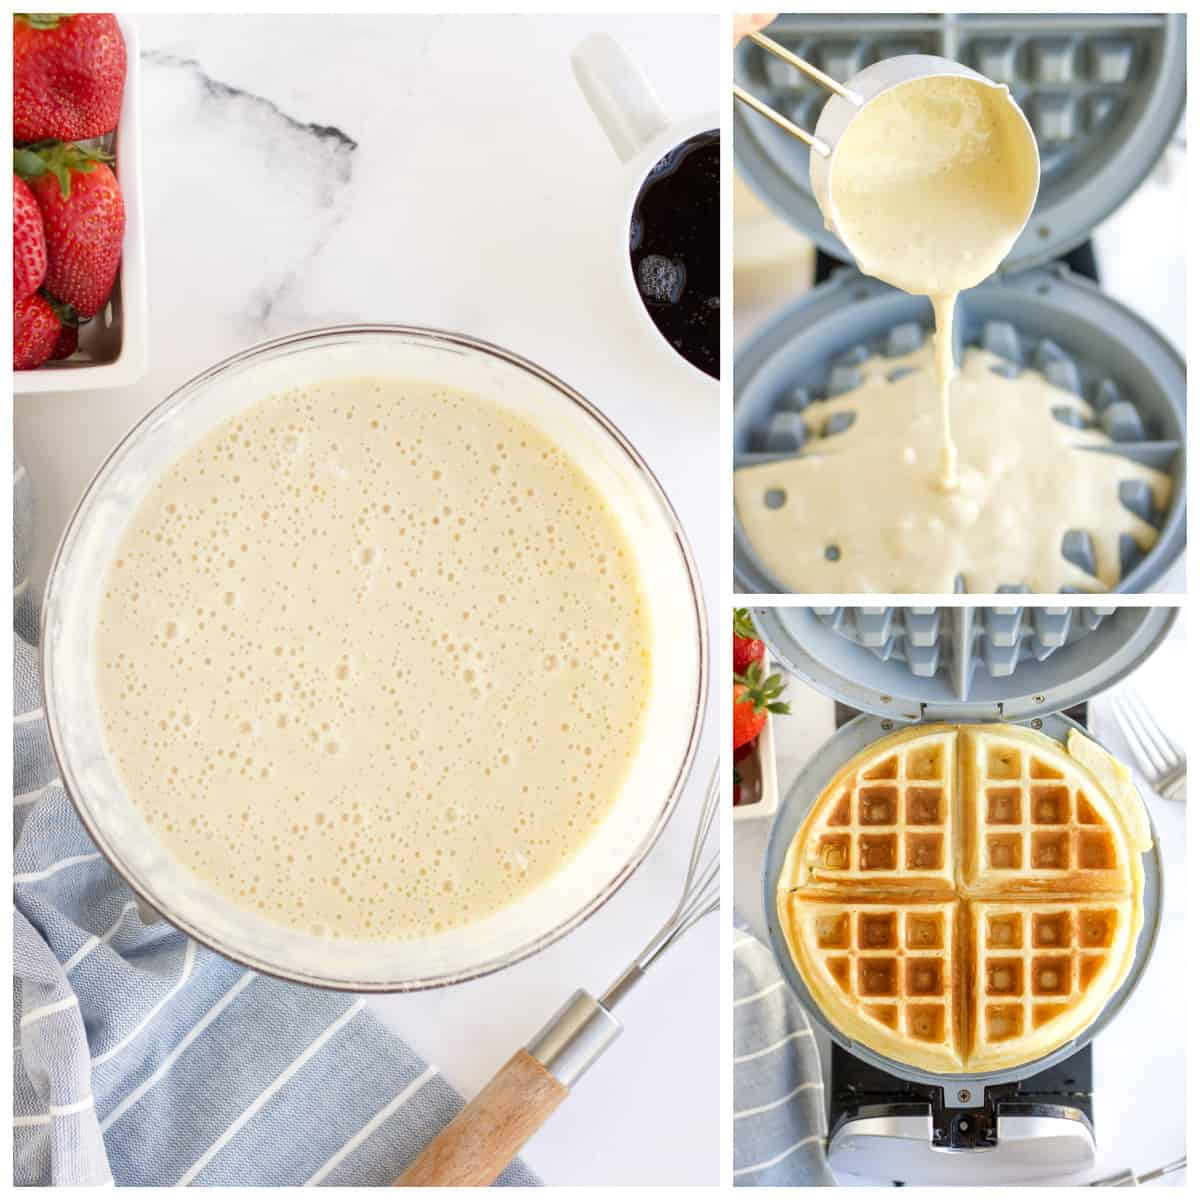 Step by step photos on how to make Belgian Waffles